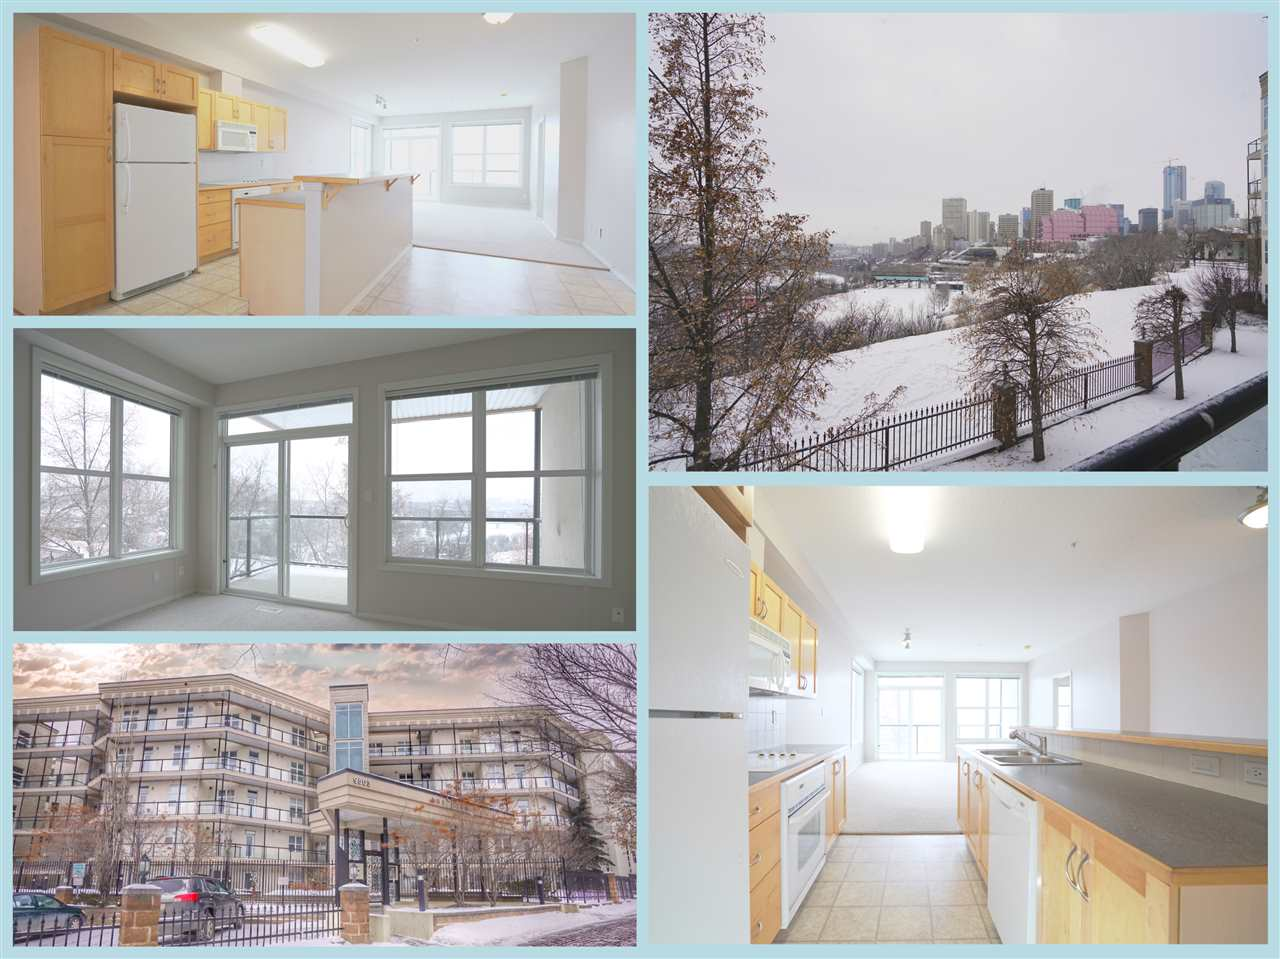 GORGEOUS RIVER VALLEY VIEWS FOR 2 BED 2 BATH WITH HEATED UNDERGROUND PARKING+STORAGE CAGE UNDER $300K LOCATED MINUTES FROM THE QUARTERS AND DOWNTOWN EDMONTON! Incredible price for your very own Downtown Condo and take advantage of the prices in this buyer?s market! THE VIEW is located atop Riverdale, the Louise Mckinney Riverfront park and steps from future QUARTERS VALLEYLINE LRT STOP! Countless investments planned for this vibrant area as Downtown continues to transform and grow. Best features include wide open floor plan with picture perfect window capturing the sunny south river valley views, your own control of Heating and air flow, large bedrooms, extra storage and a home that gives you the opportunity to update and make it your own! Don?t miss out on the best value in the market for apartment condo steps from one of the hottest upcoming neighbourhoods steps from Downtown! Take a look and get ready to move right in!